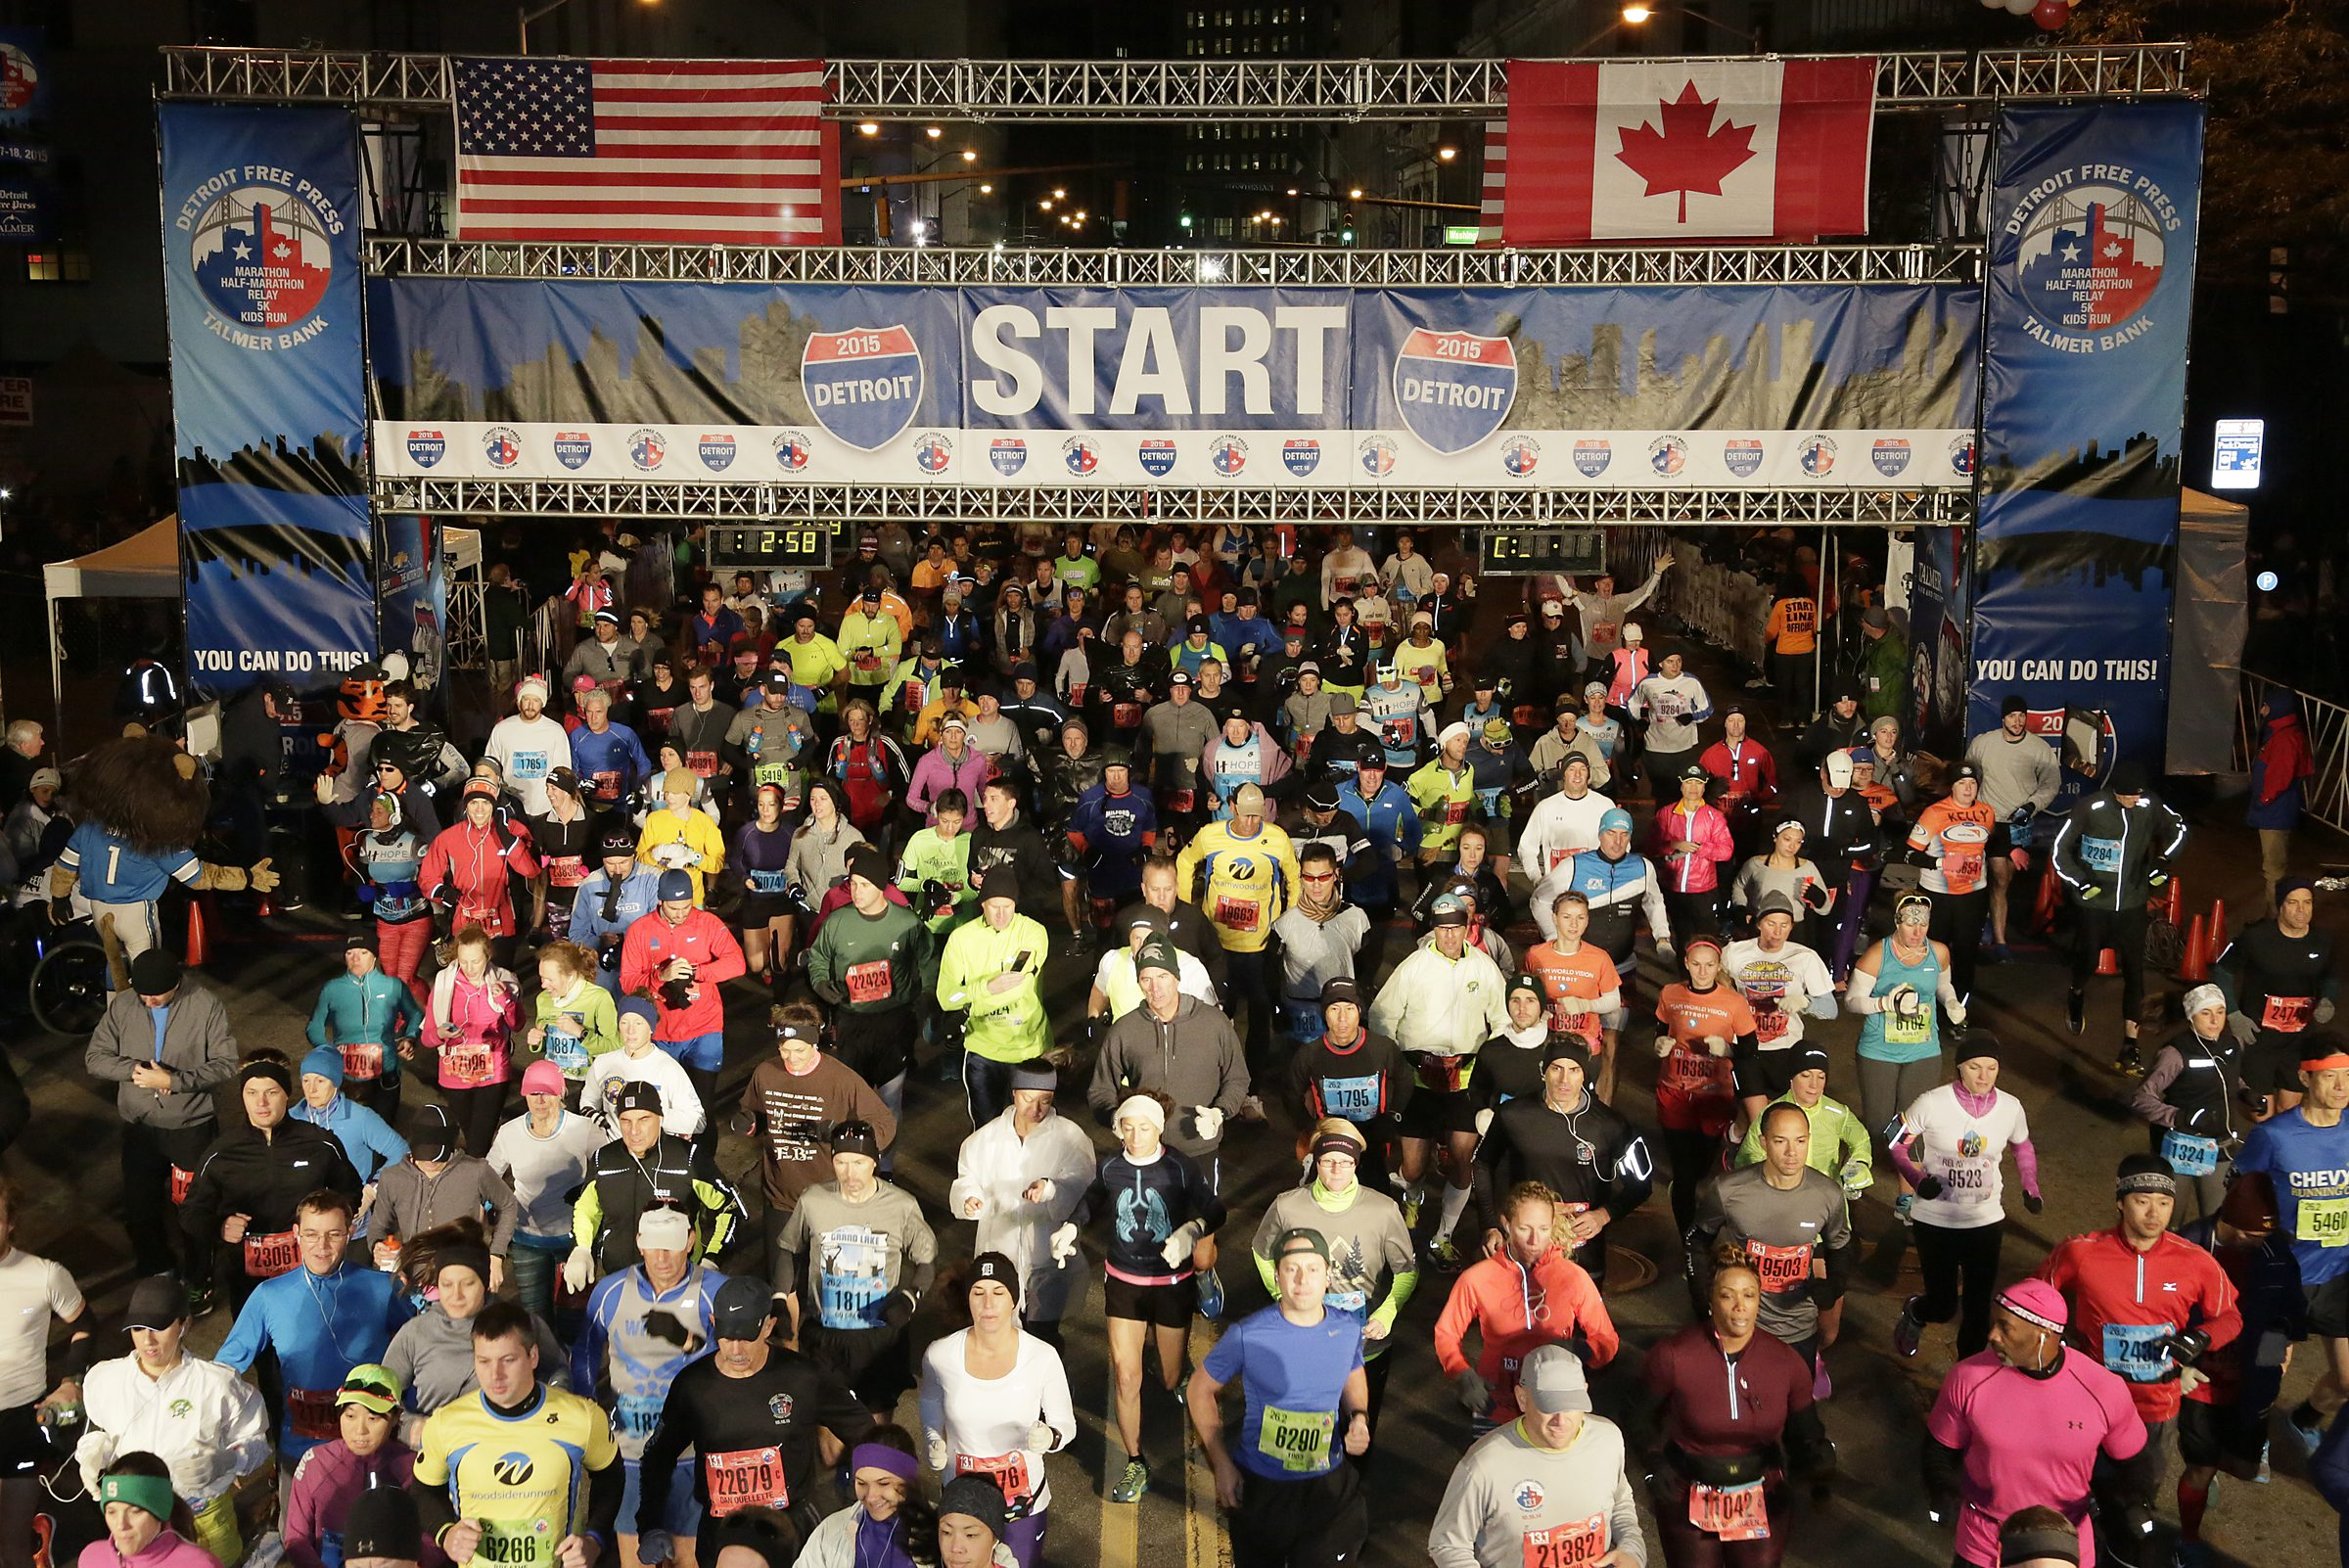 Image of the Detroit Free Press/Talmer Bank Marathon start line.